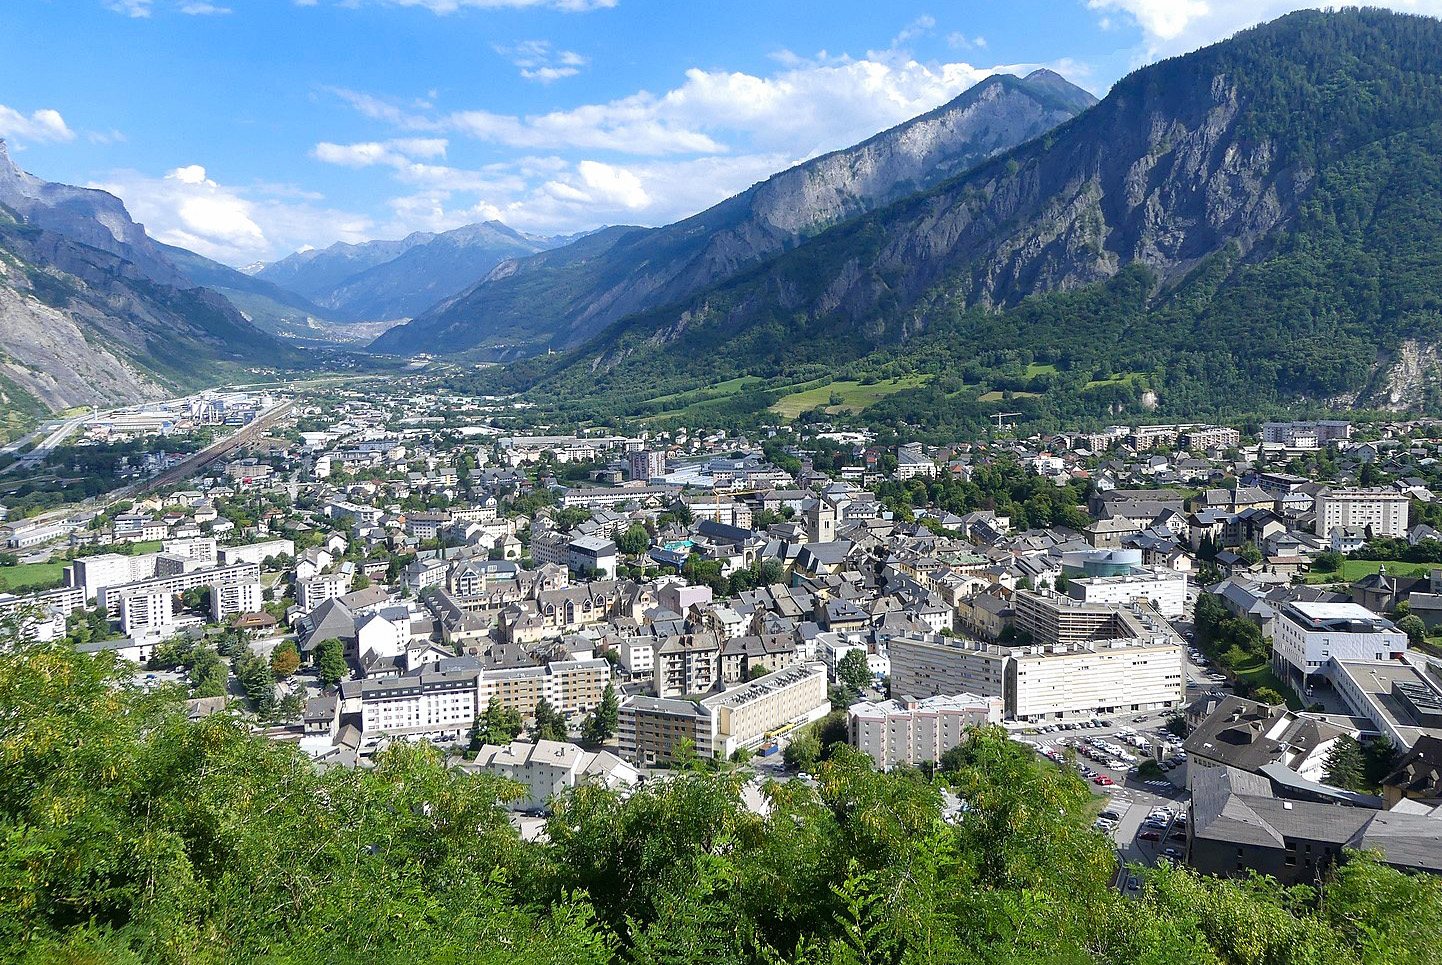 General view of Saint-Jean-de-Maurienne © Florian Pépellin - license [CC BY-SA 4.0] from Wikimedia Commons